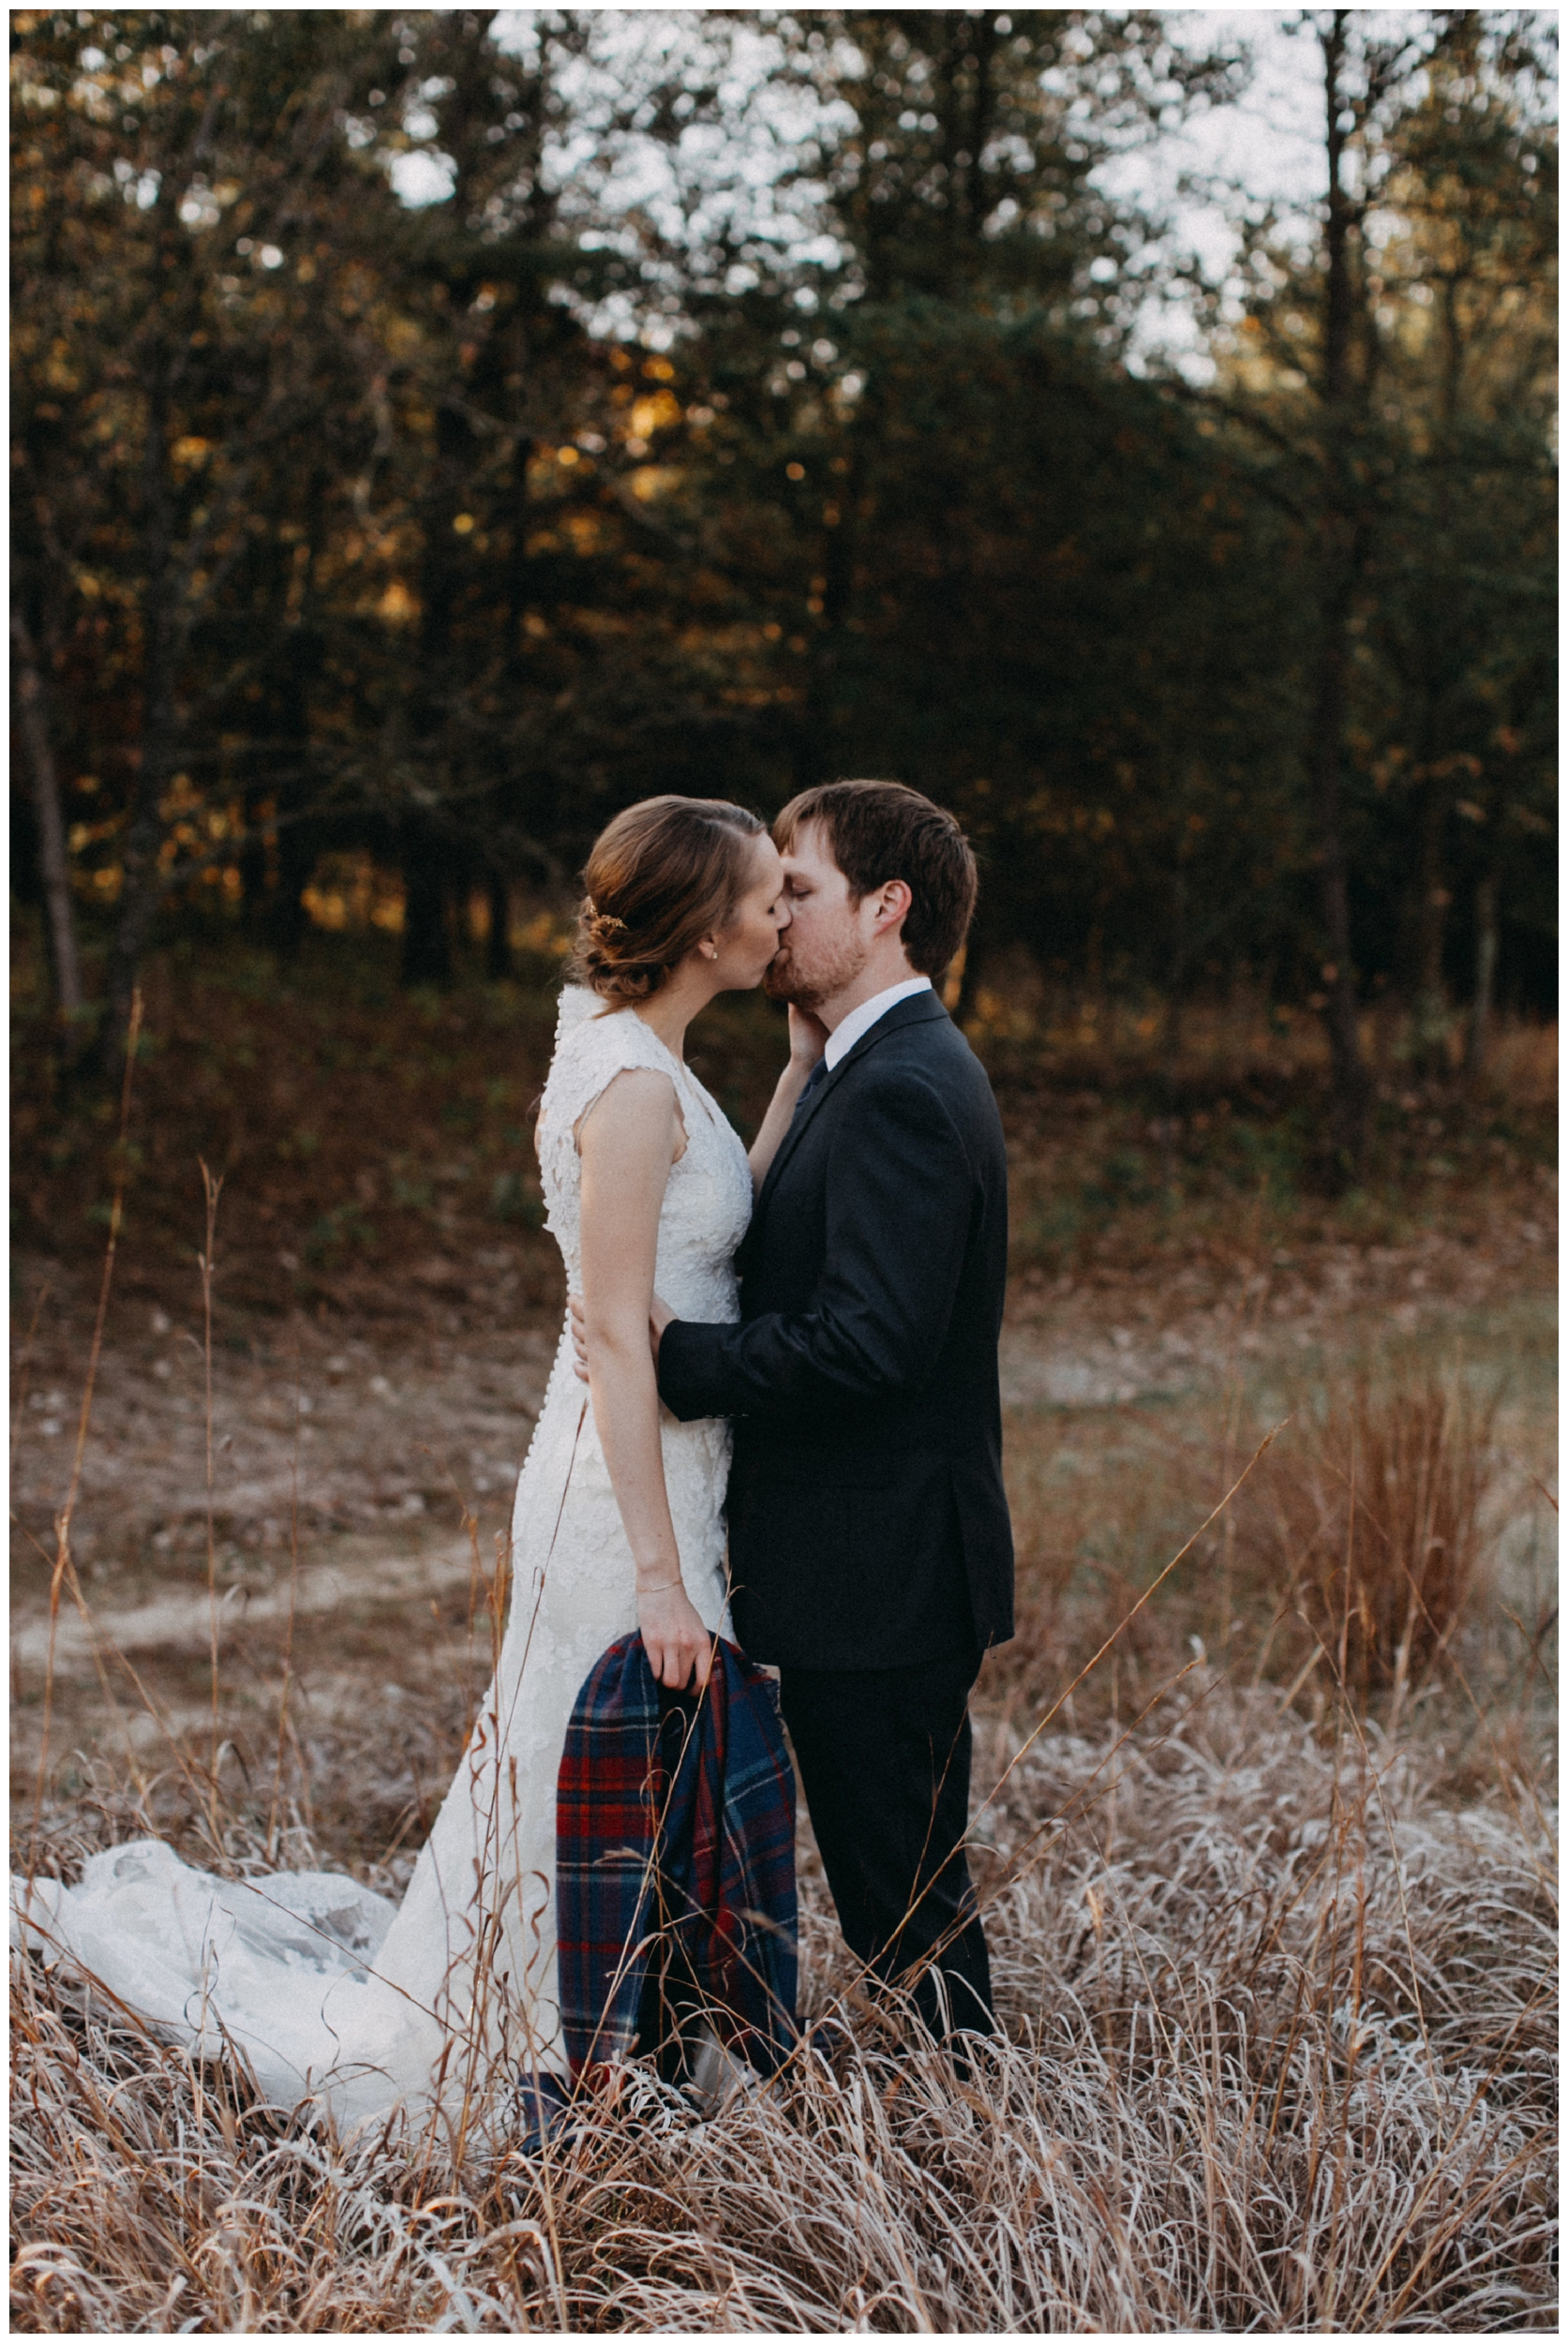 Simple and timeless October wedding at the Northland Arboretum